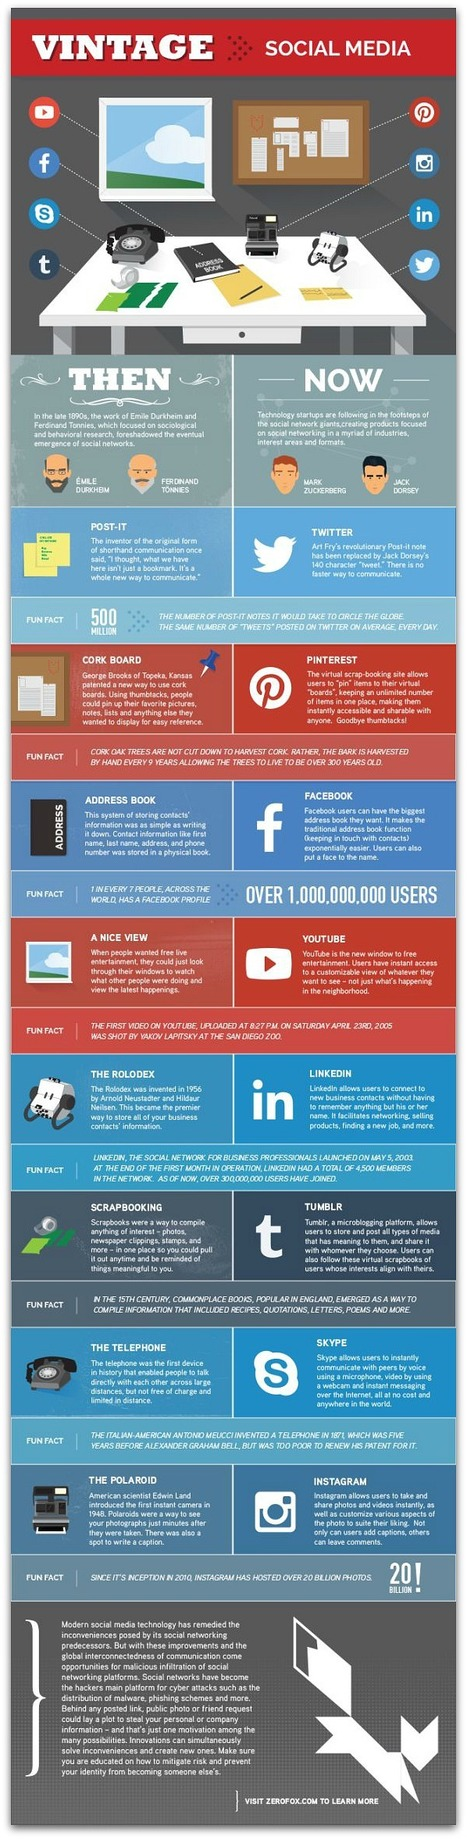 Infographic: Social media then and now | GILT | Scoop.it